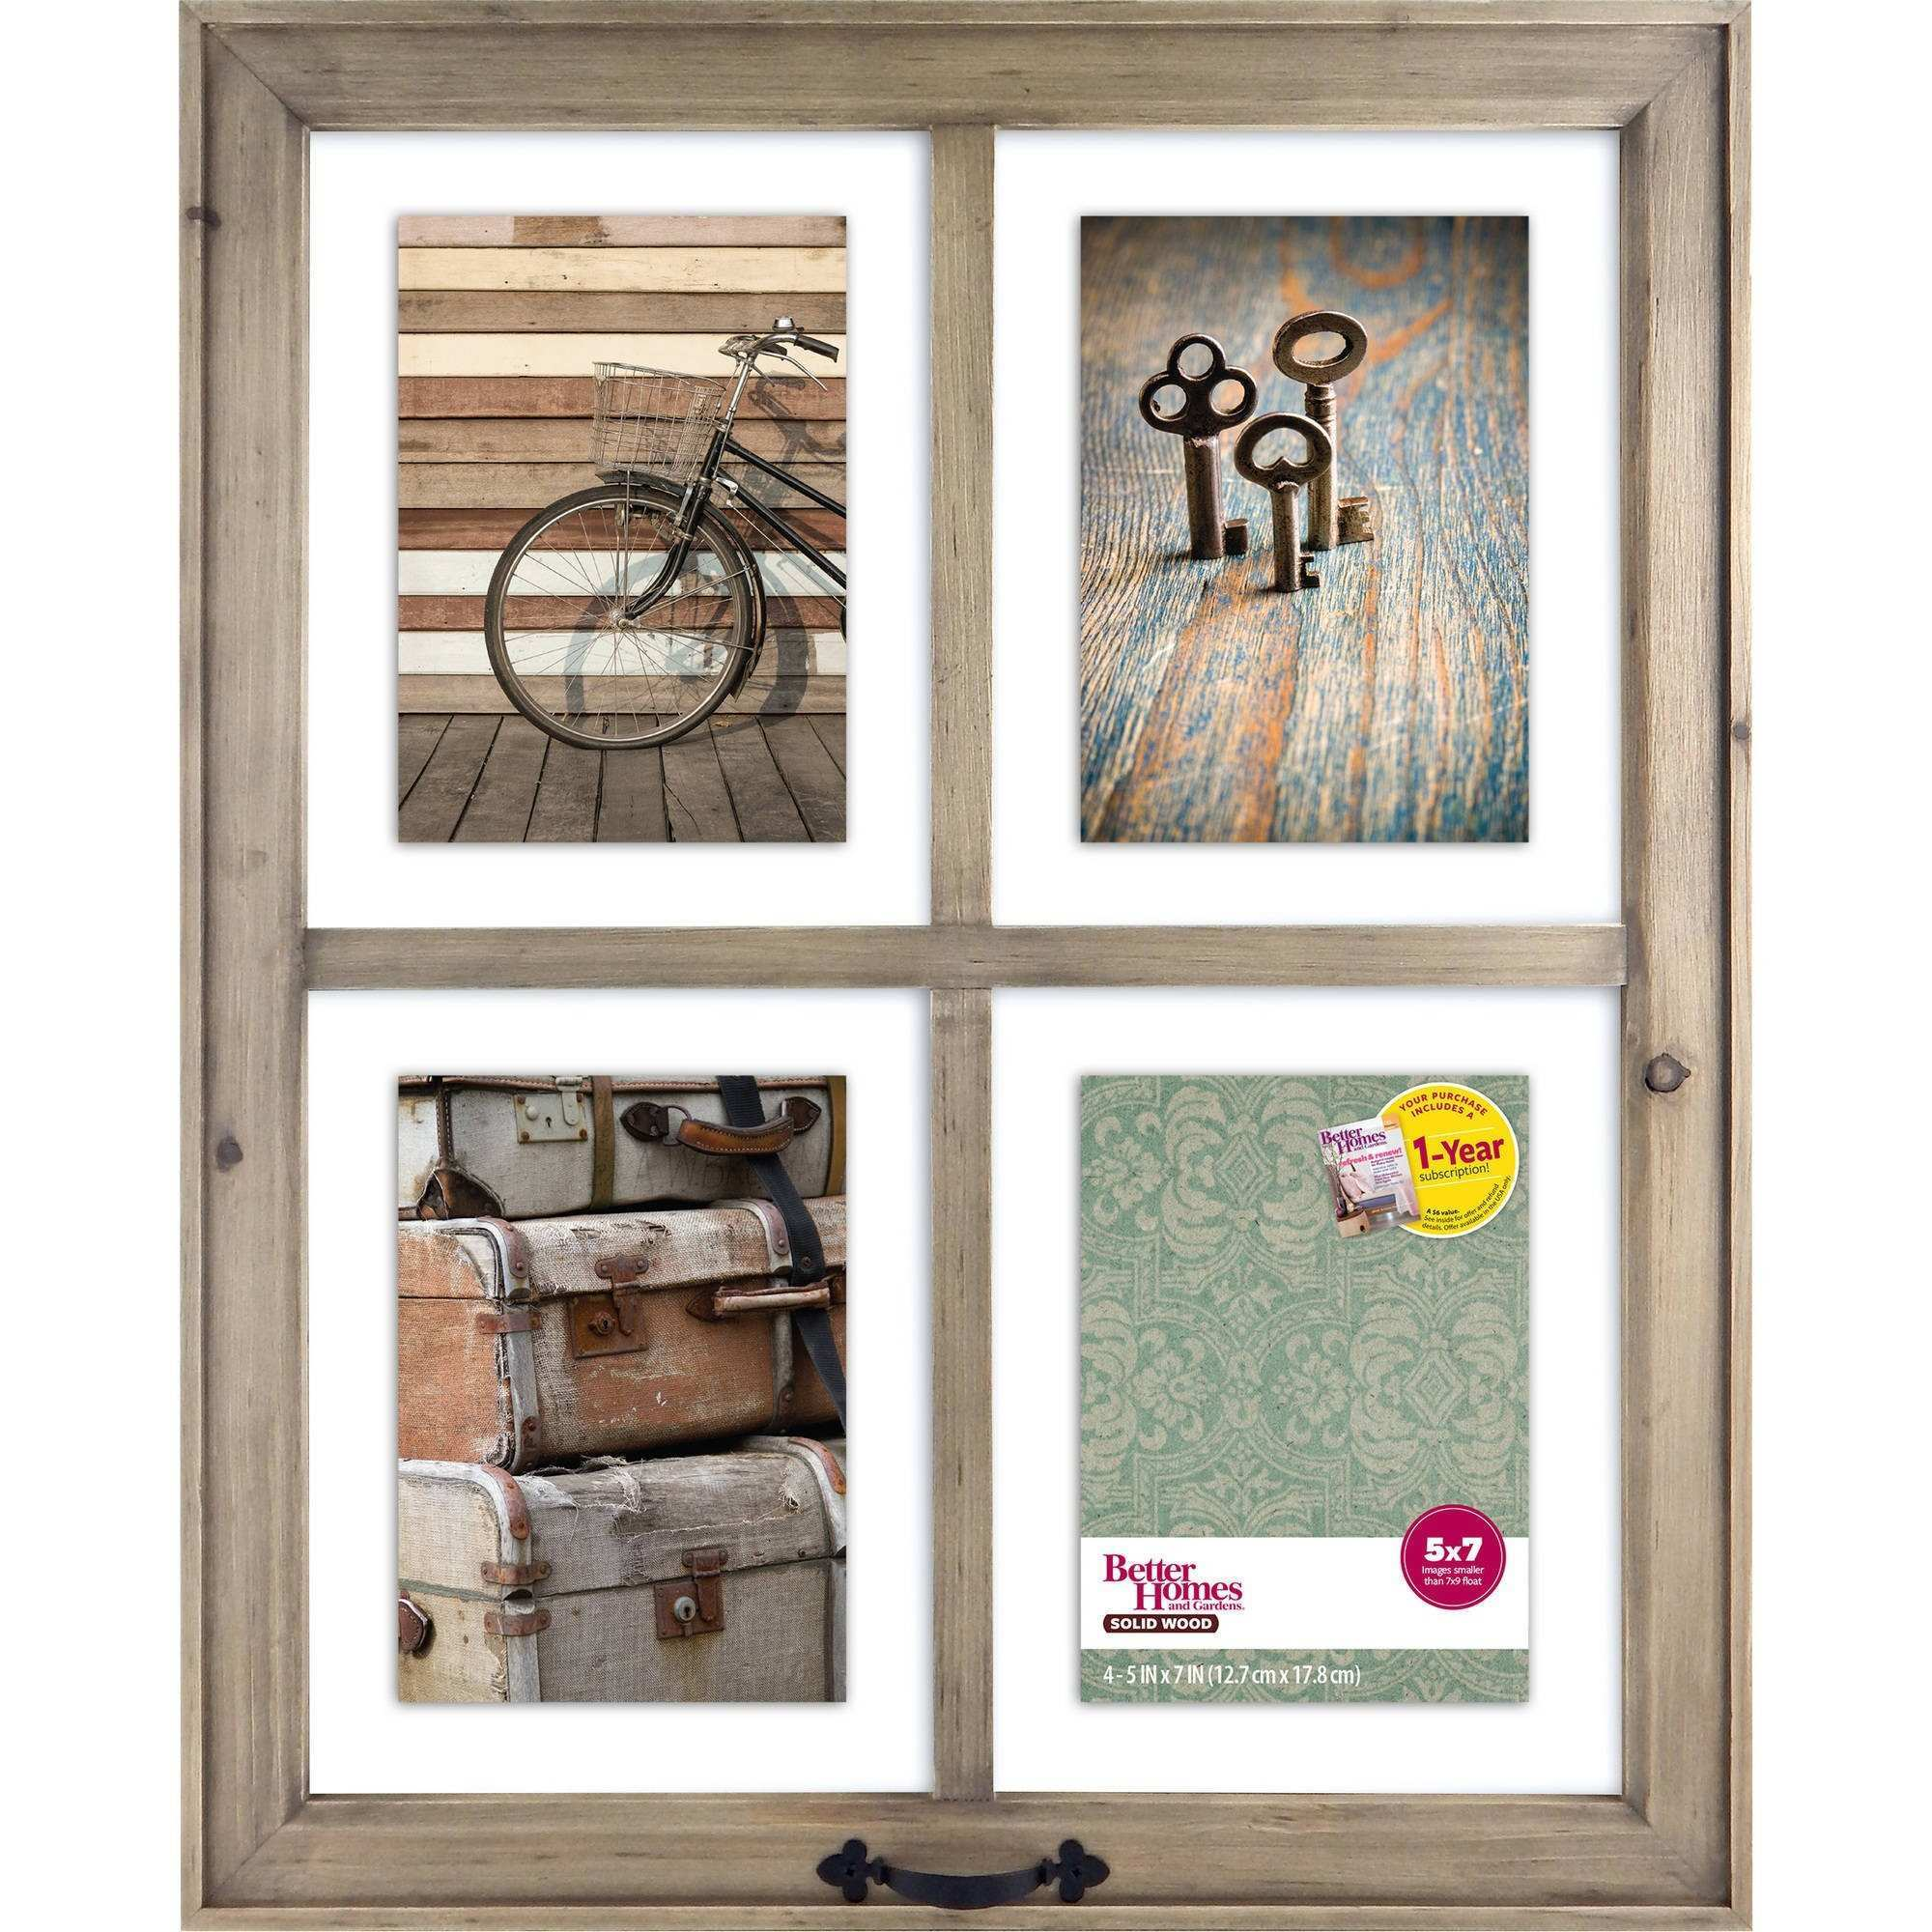 New 50 7 X 26 Picture Frame Pics